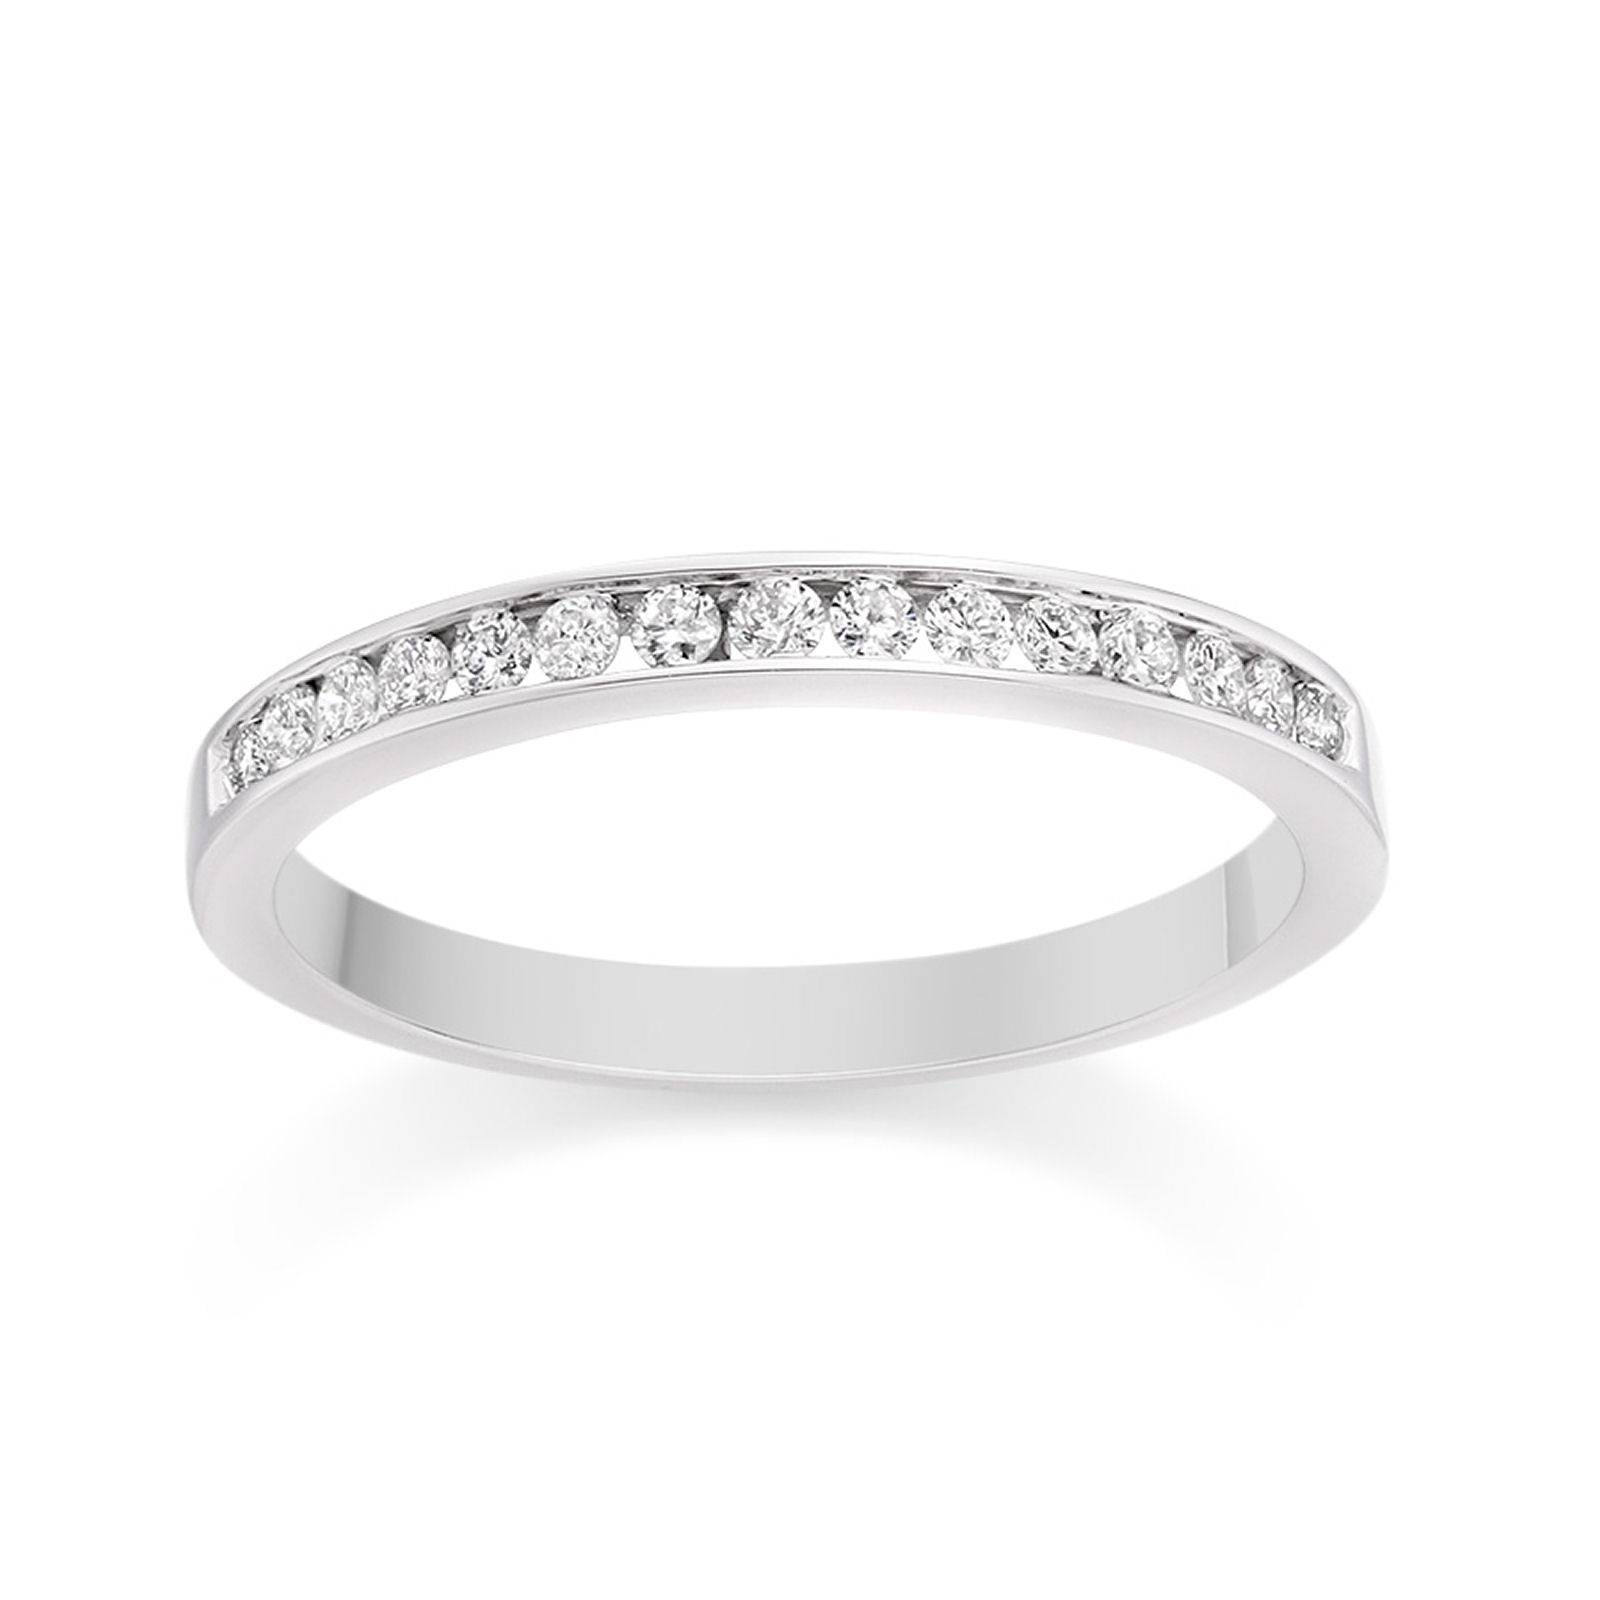 Featured Photo of Platinum Wedding Band With Diamonds